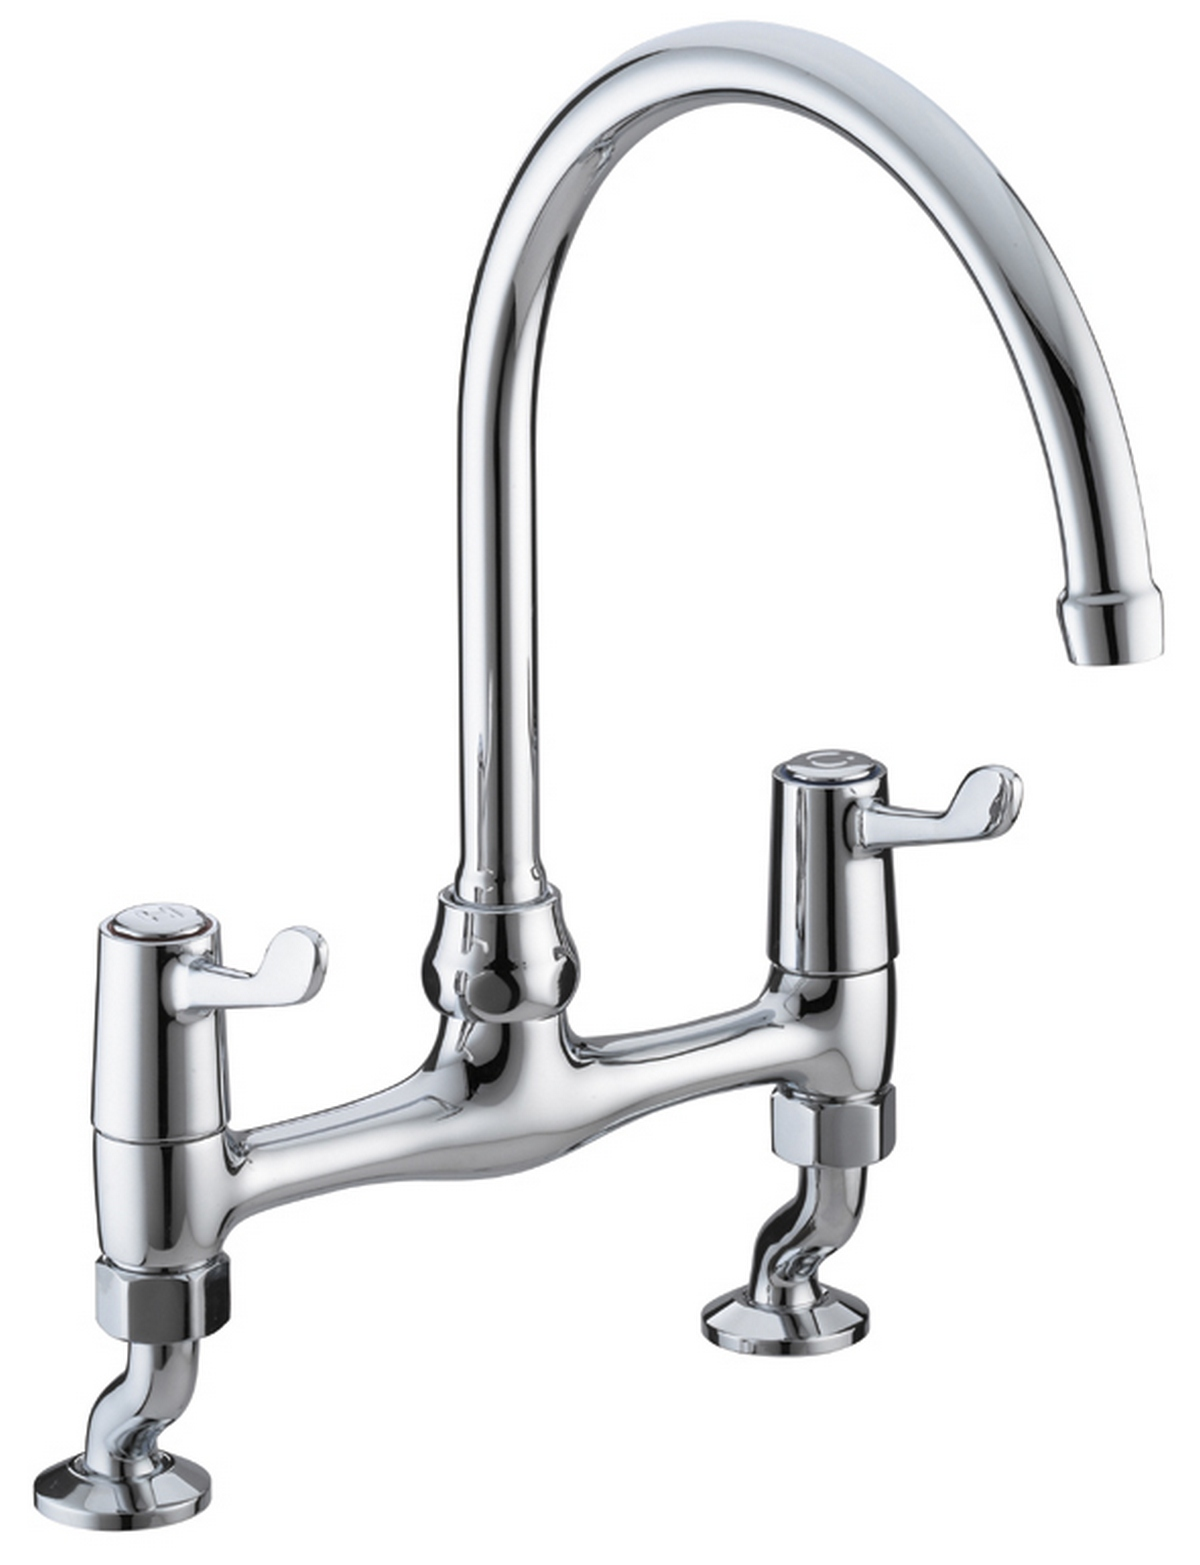 Bristan | Value | VAL BRDSM C CD | Kitchen Sink Mixer